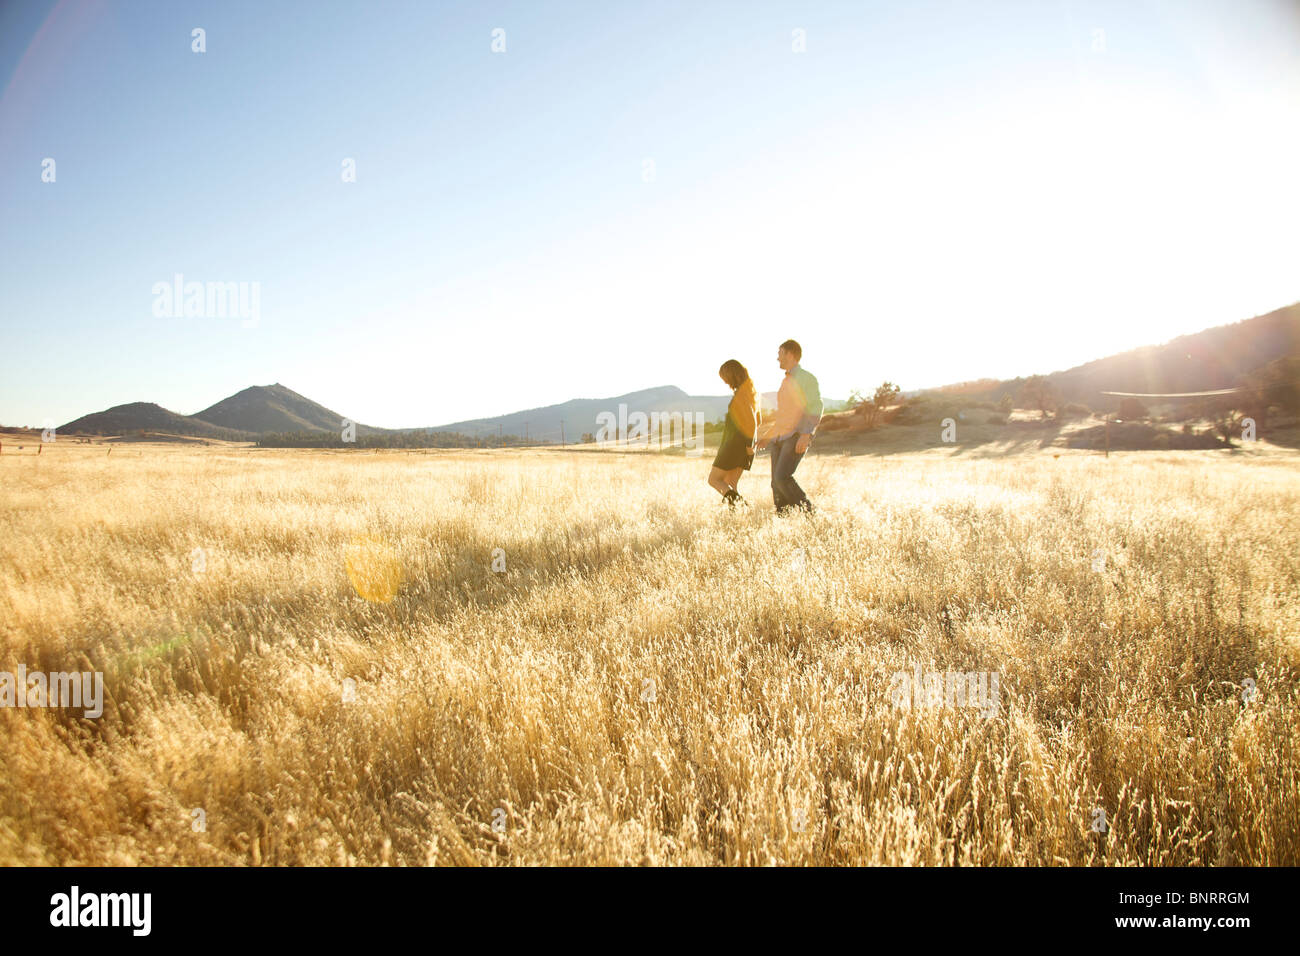 db7d6fa9a0fed7 Couple in the far distance walking together in an open field. - Stock Image